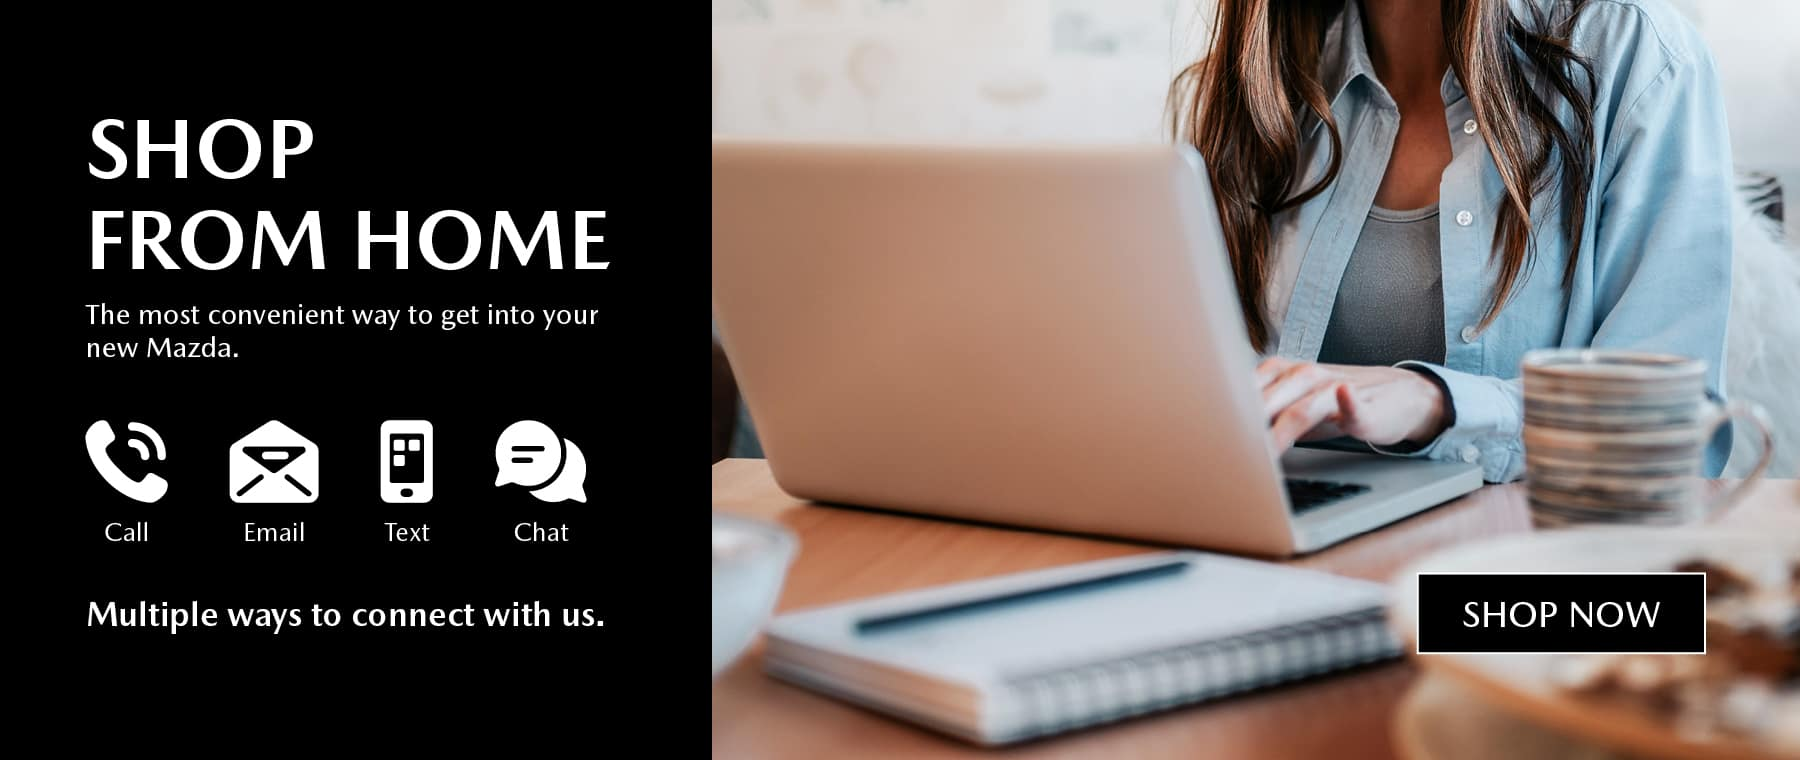 Shop from home. The most convenient way to get into your new Mazda. Call, email, text, or chat, there's multiple ways to connect with us. View Inventory.